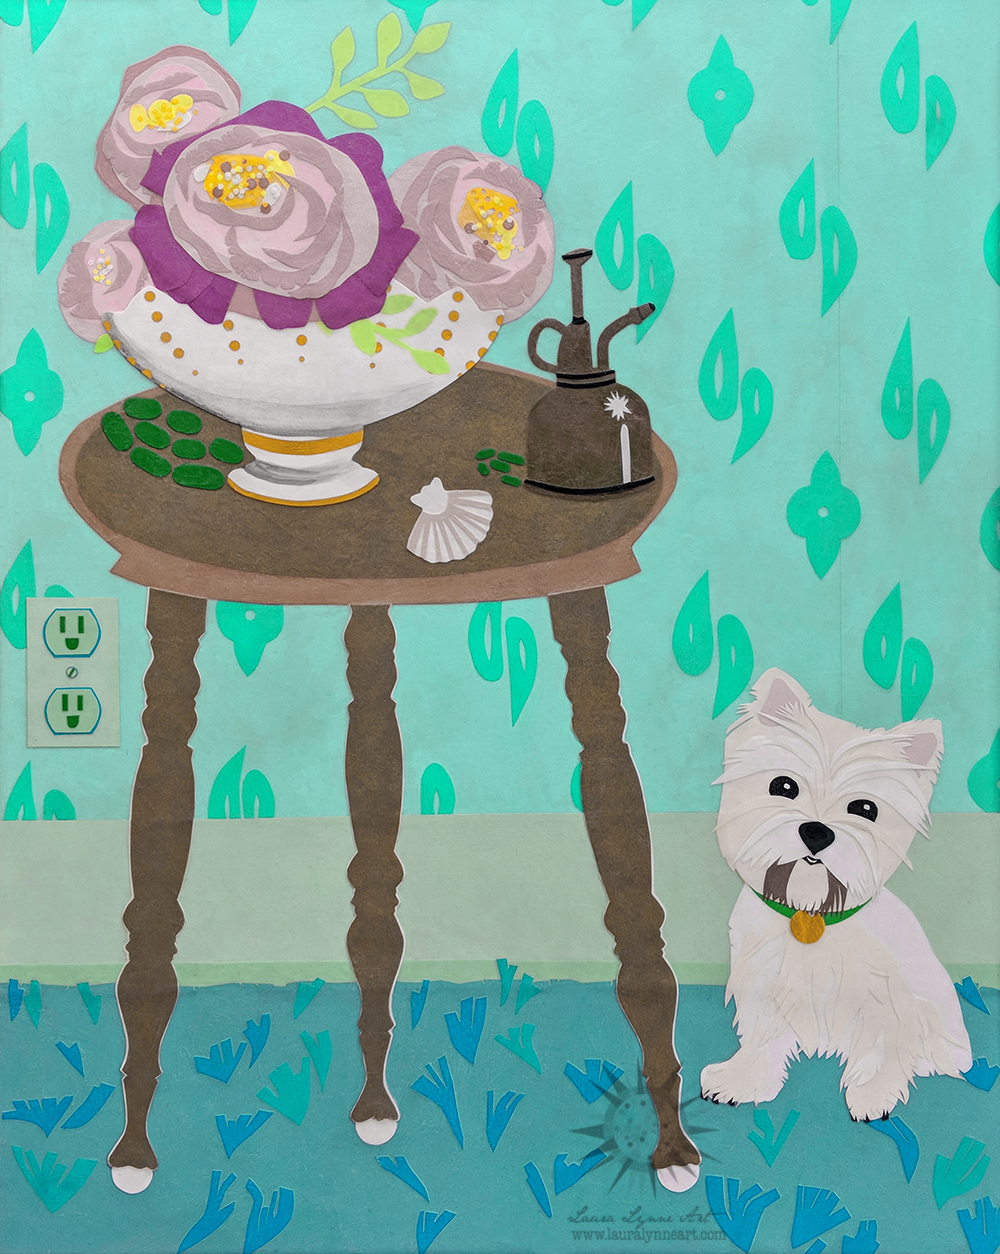 Room Portrait illustration of a table with a vase of peonies, a shell, and a West Highland Terrior Mixed Media Art